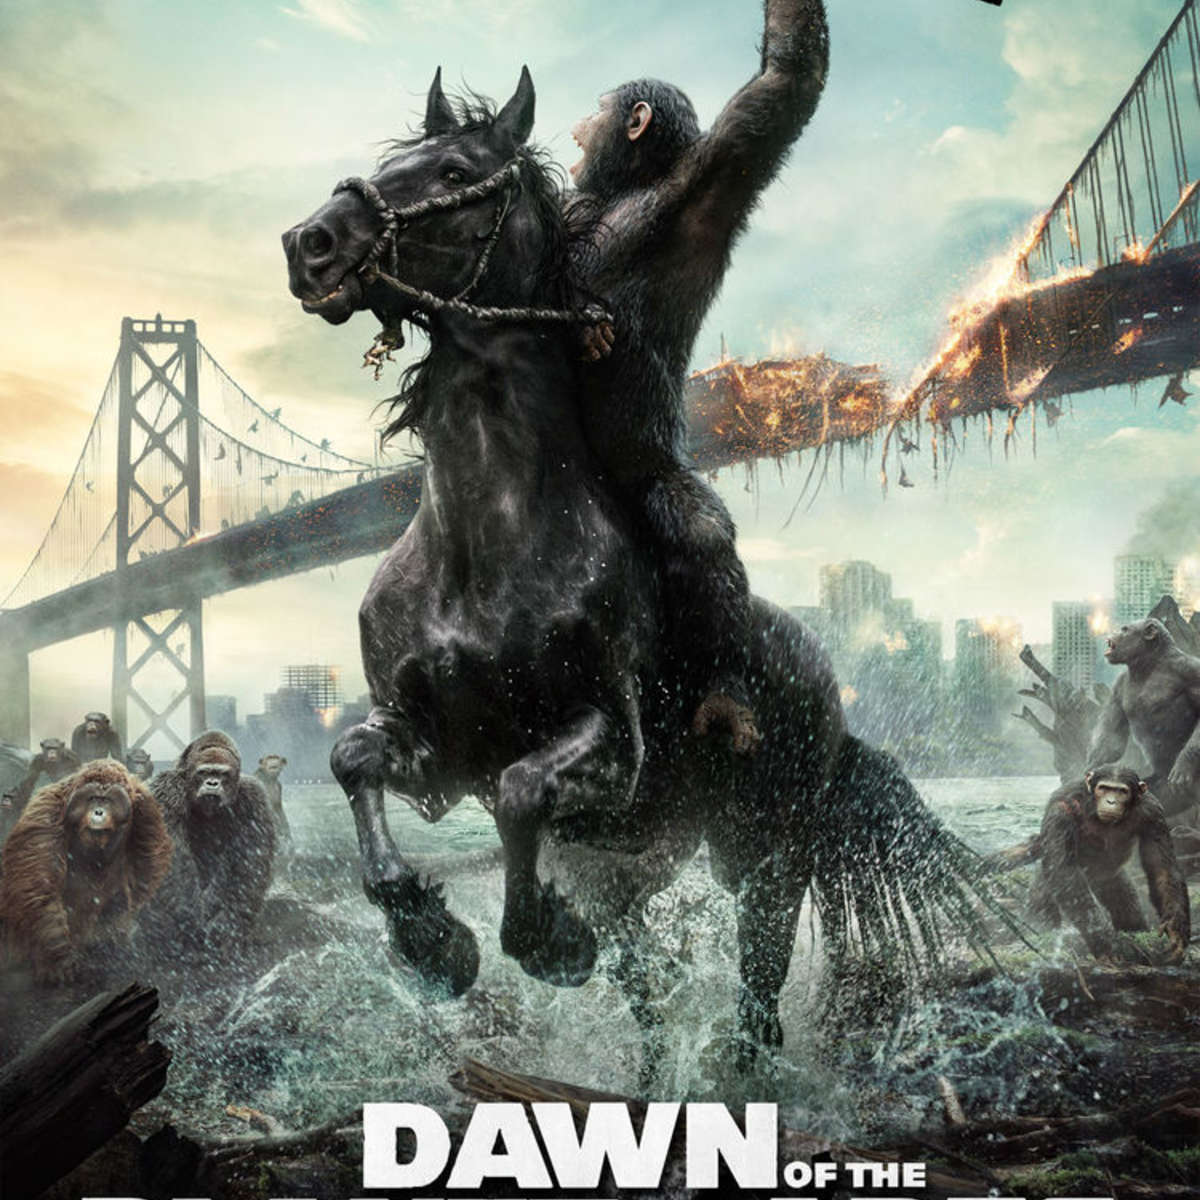 new-poster-for-dawn-of-the-planet-of-the-apes.jpg